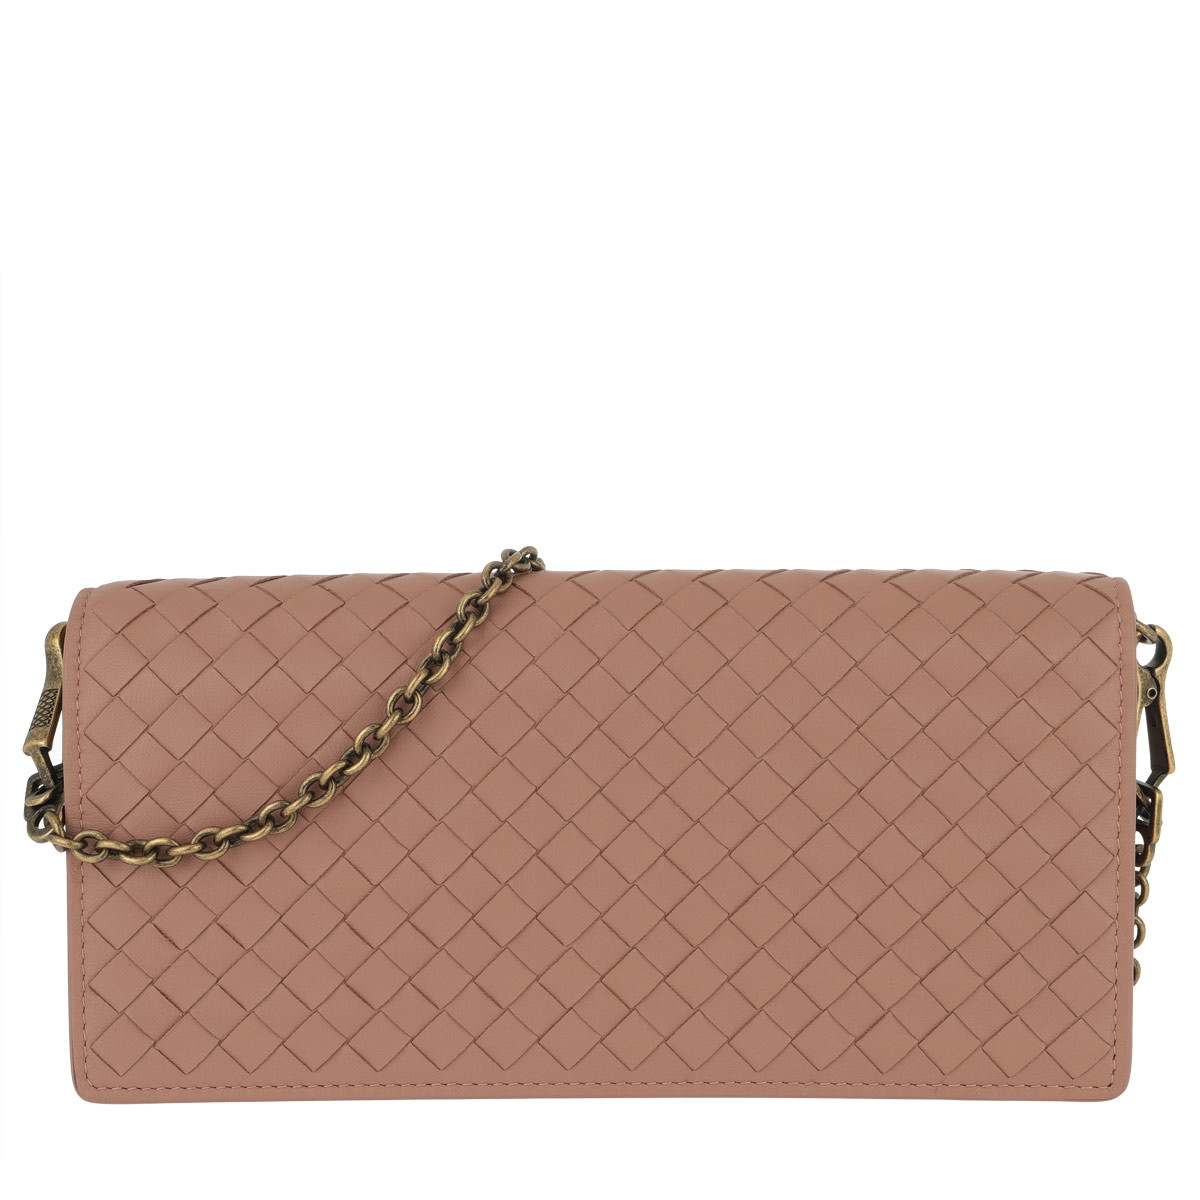 Bottega Veneta Umhängetasche - Intrecciato Clutch Leather Dahlia - in rosa - für Damen